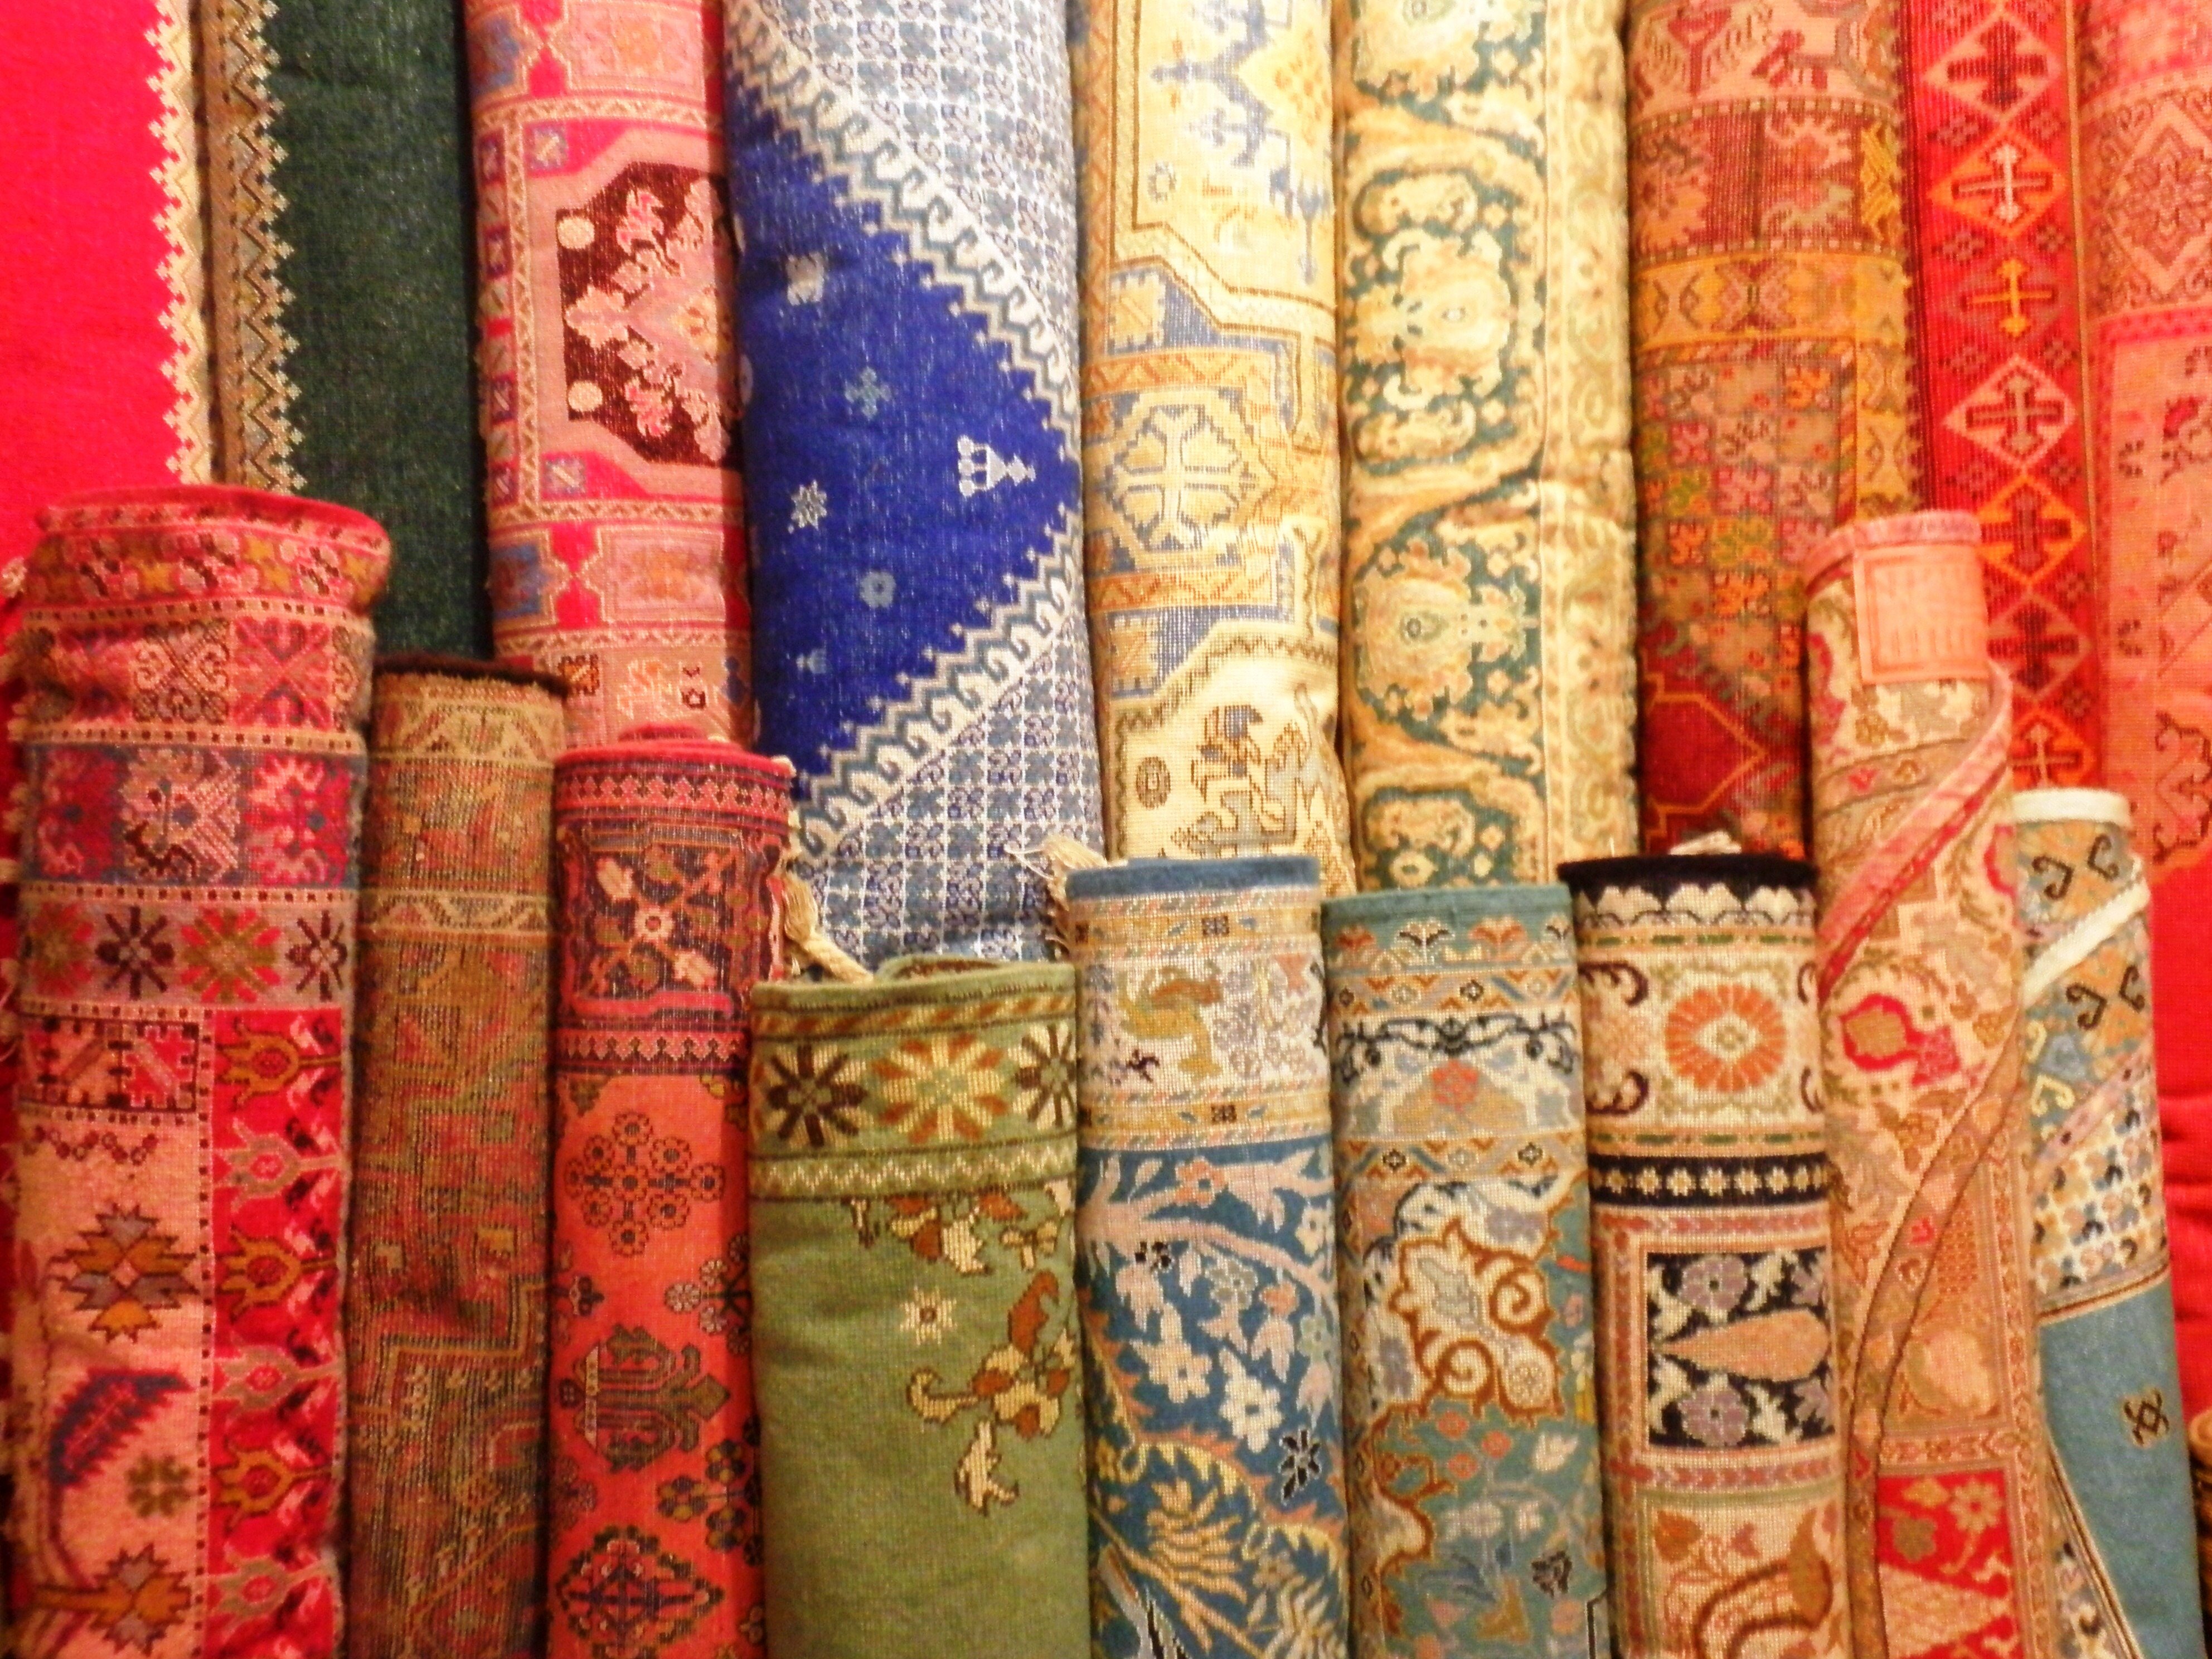 Morocco Fez Carpet Sales Have Bag Will Travel